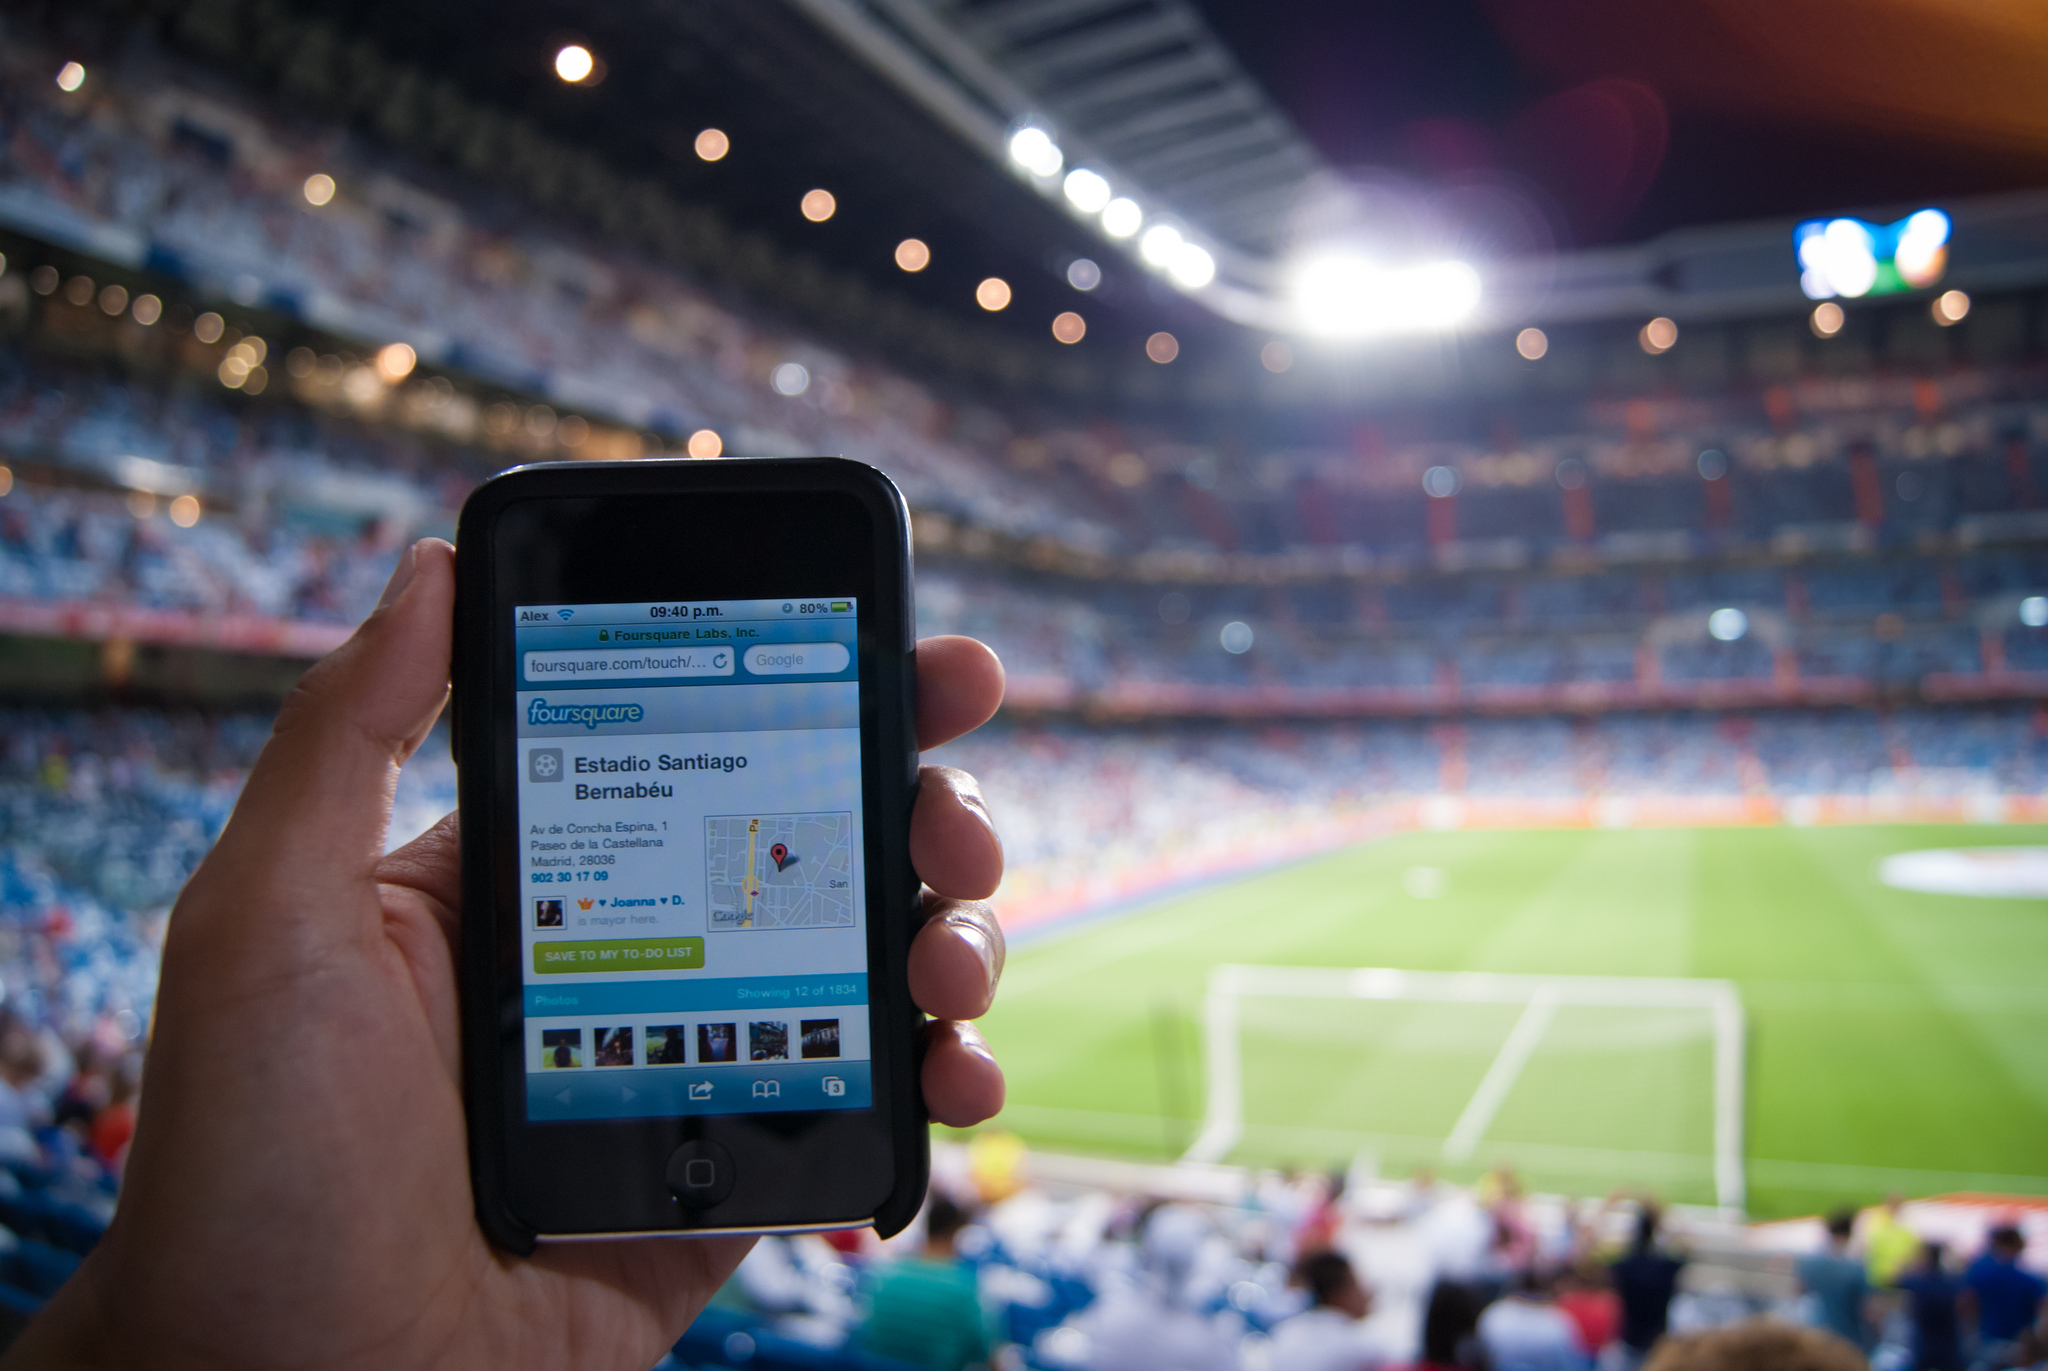 Foursquare at a soccer game. Photo by Alejandro Castro